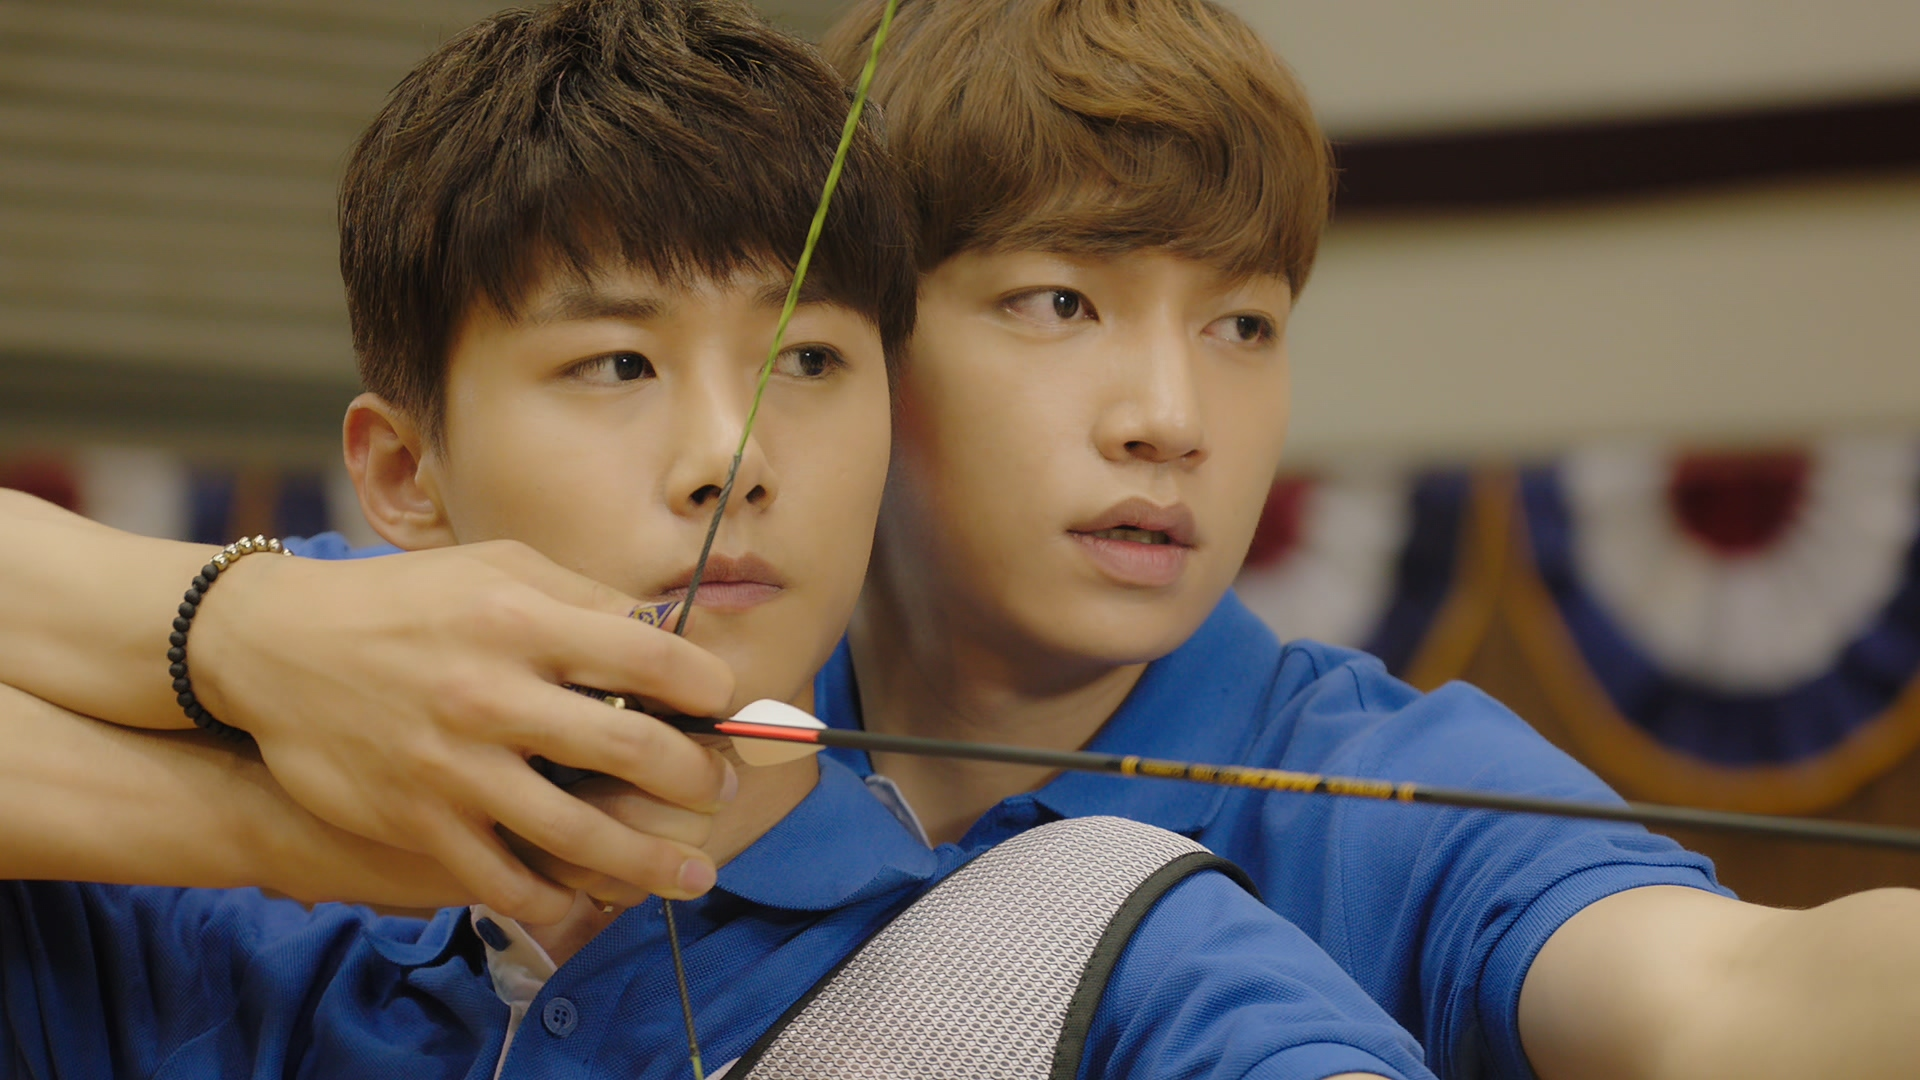 Matching! Boys Archery Episode 6